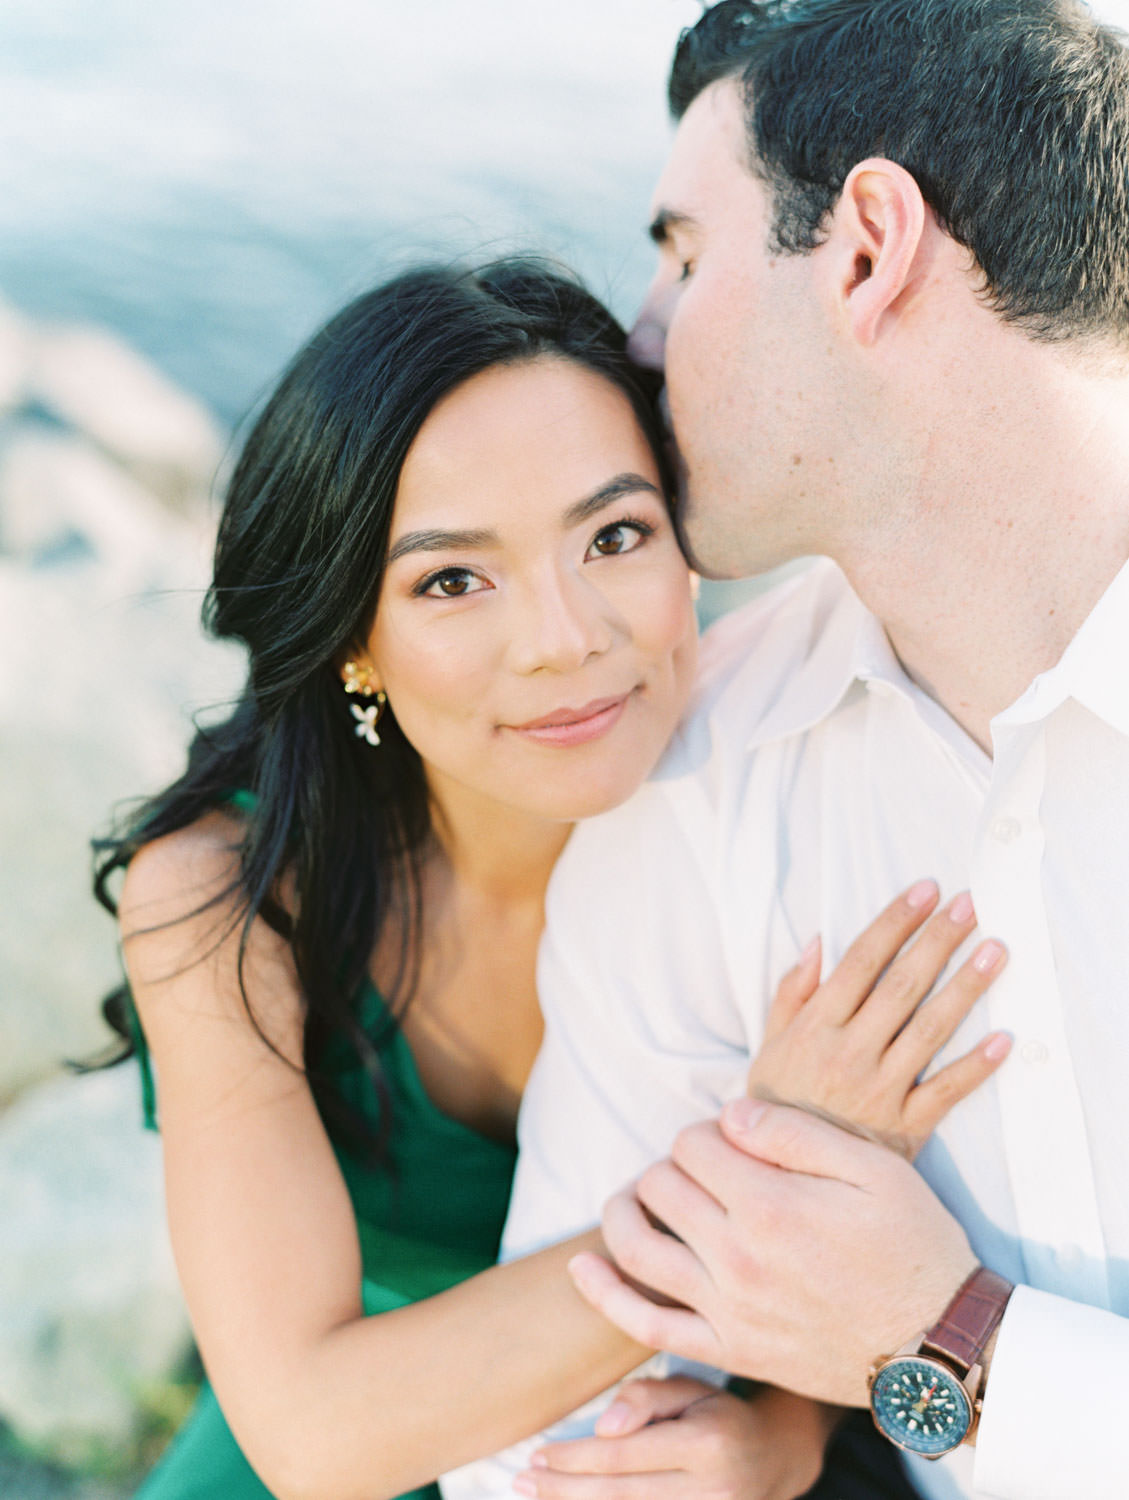 Bride looking at the camera while groom kisses her head. Bride in Tularosa Villa Dress from Revolve and groom in white button down and . San Diego Embarcadero North engagement photos on film by Cavin Elizabeth Photography